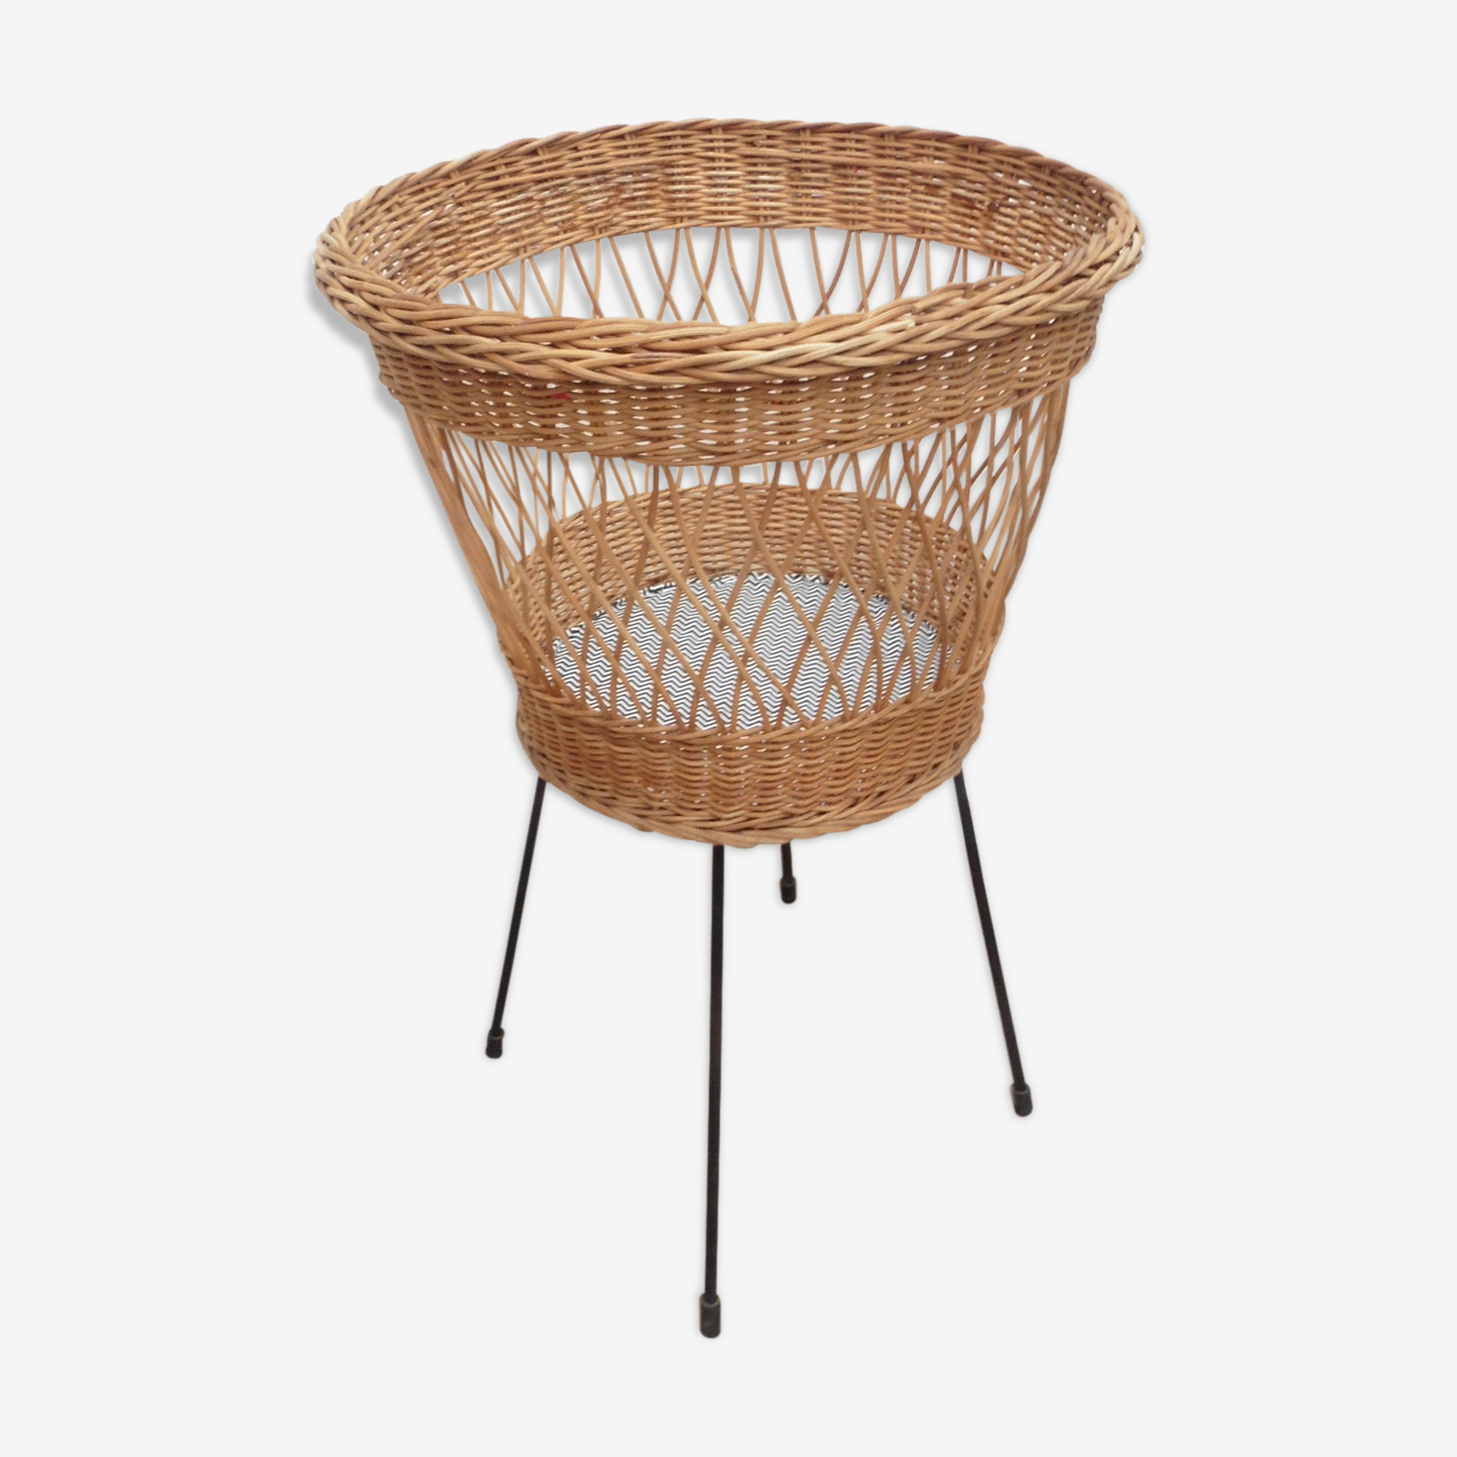 Wicker and metal sewing basket